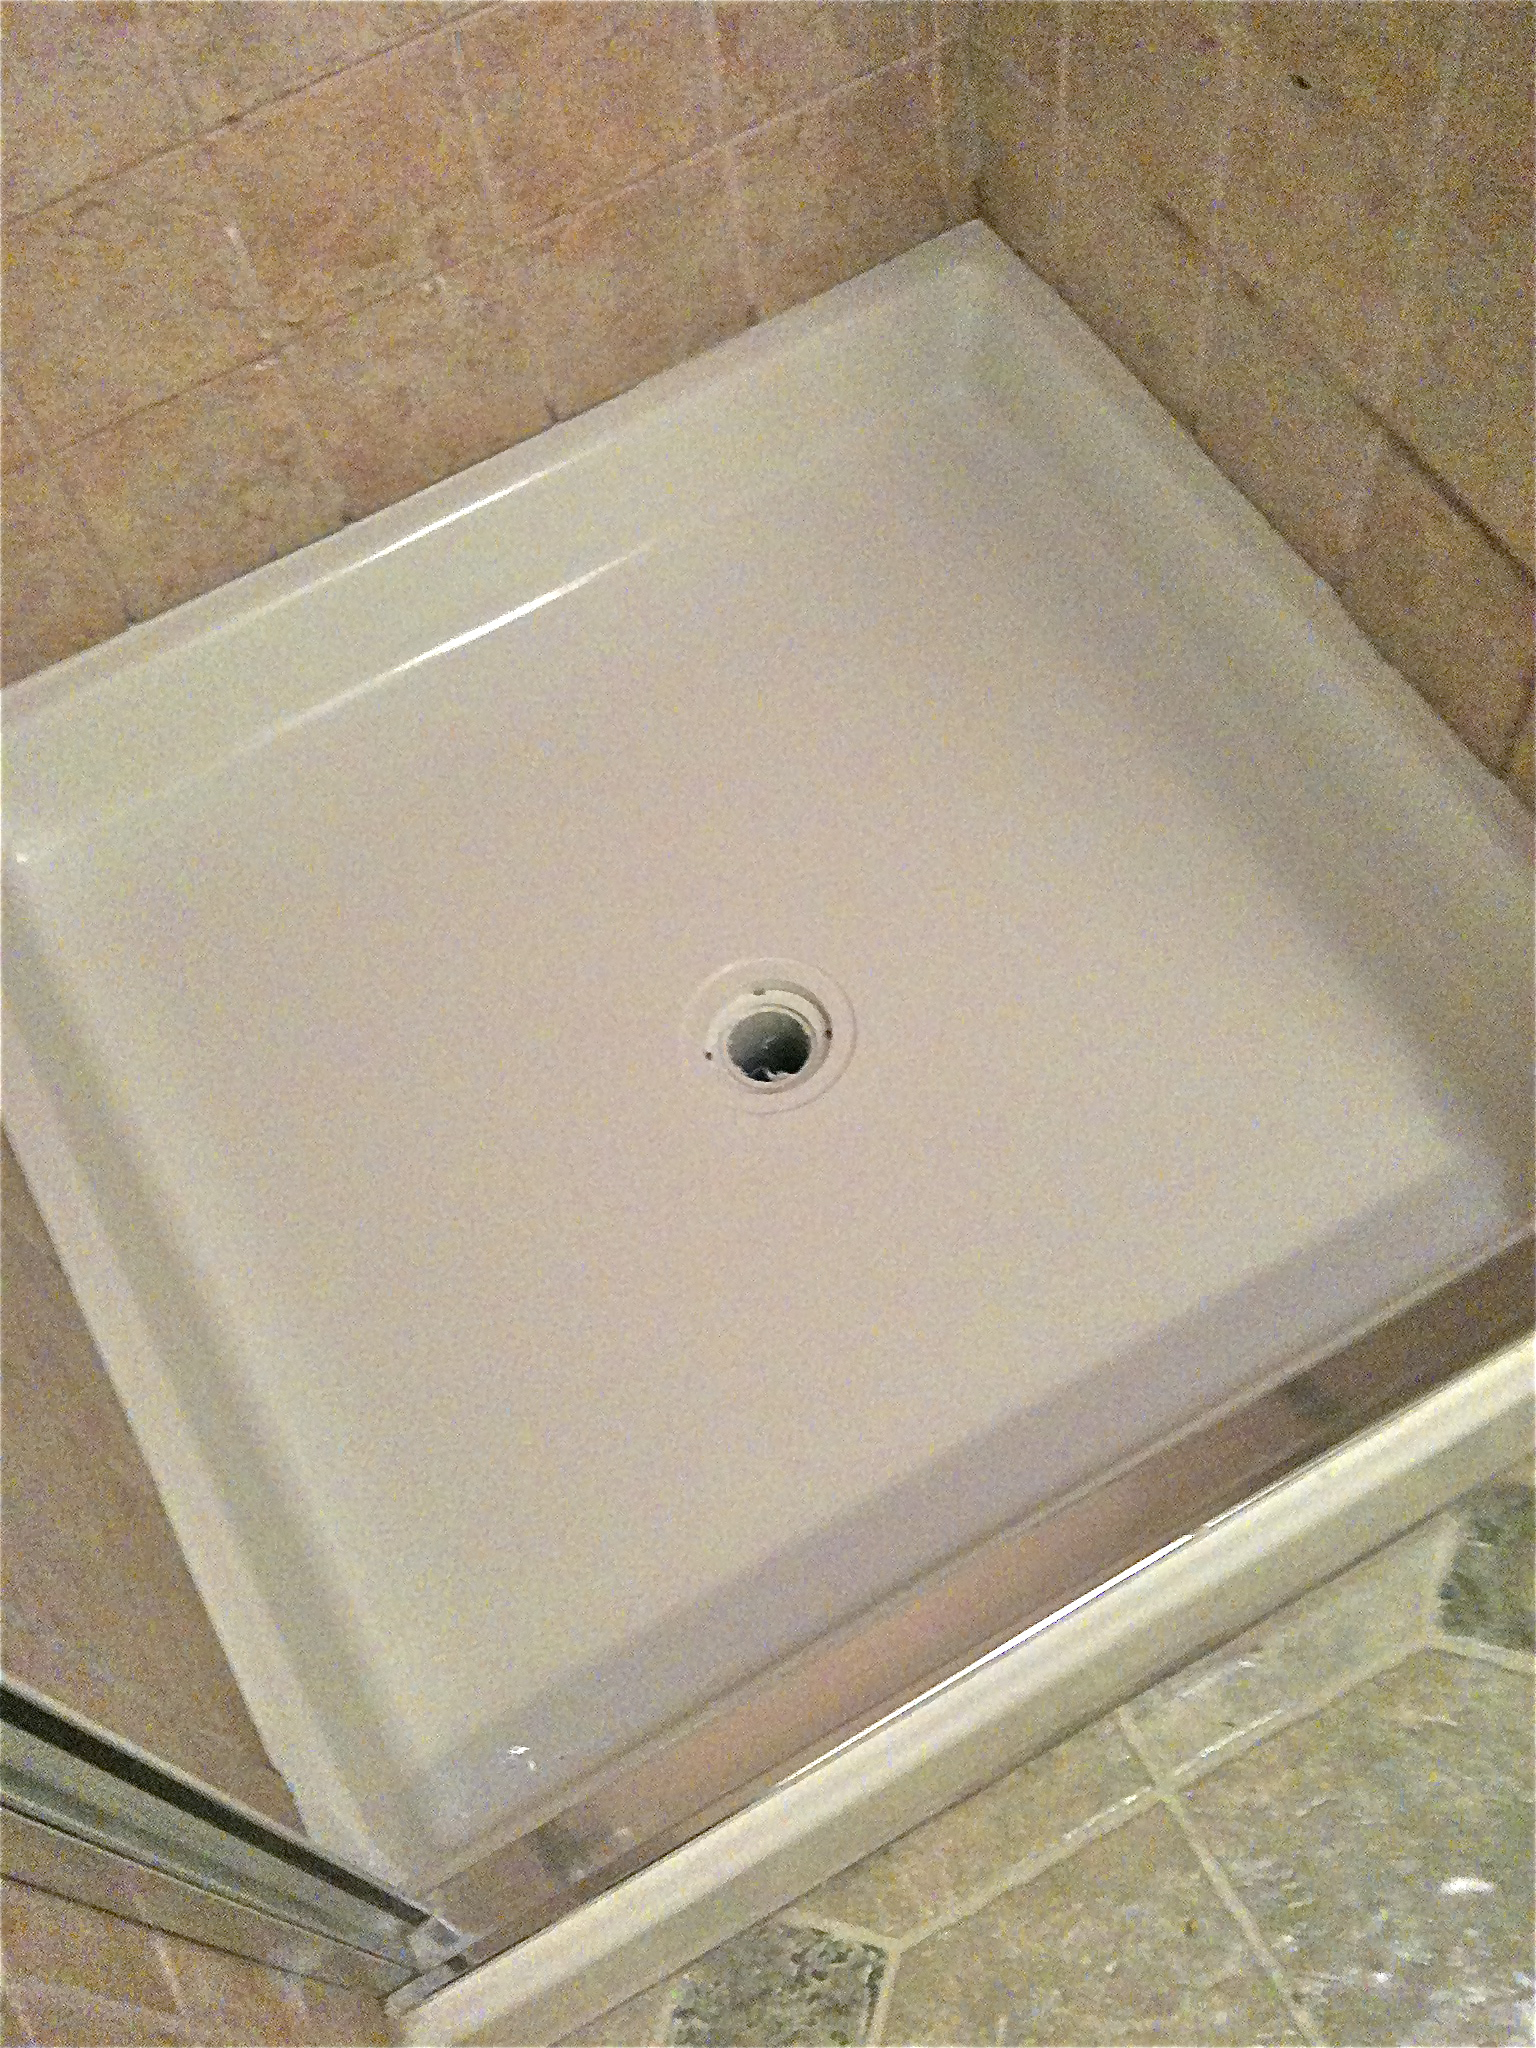 How to fix a cracked shower pan - Colorado Tub Repair